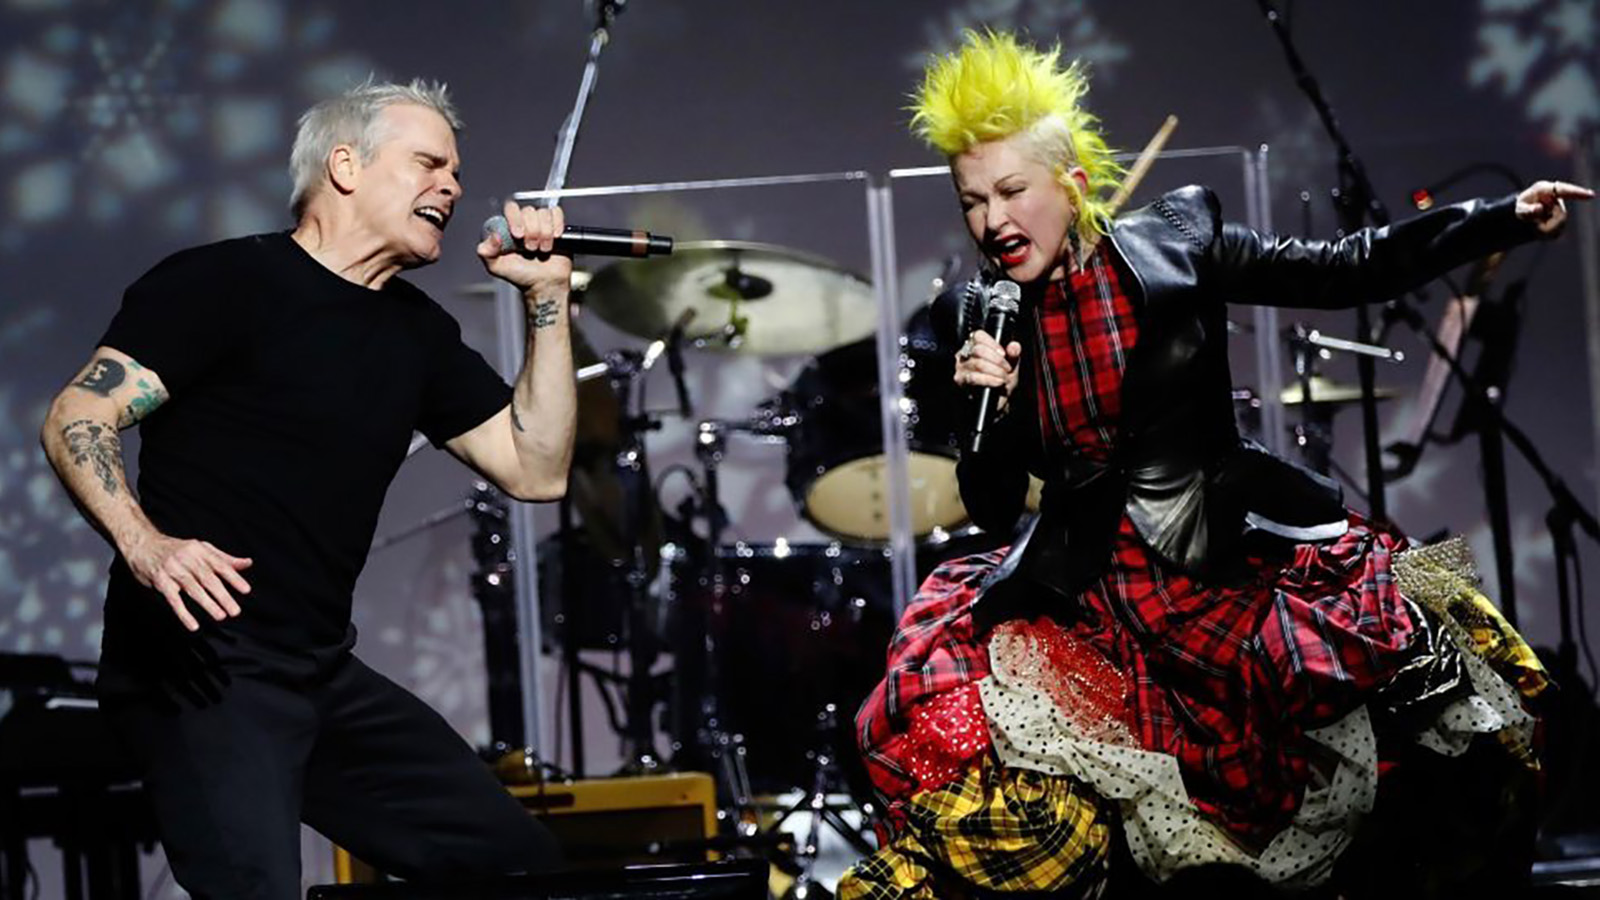 See Cyndi Lauper Duet With Marilyn Manson, Henry Rollins at Benefit Show